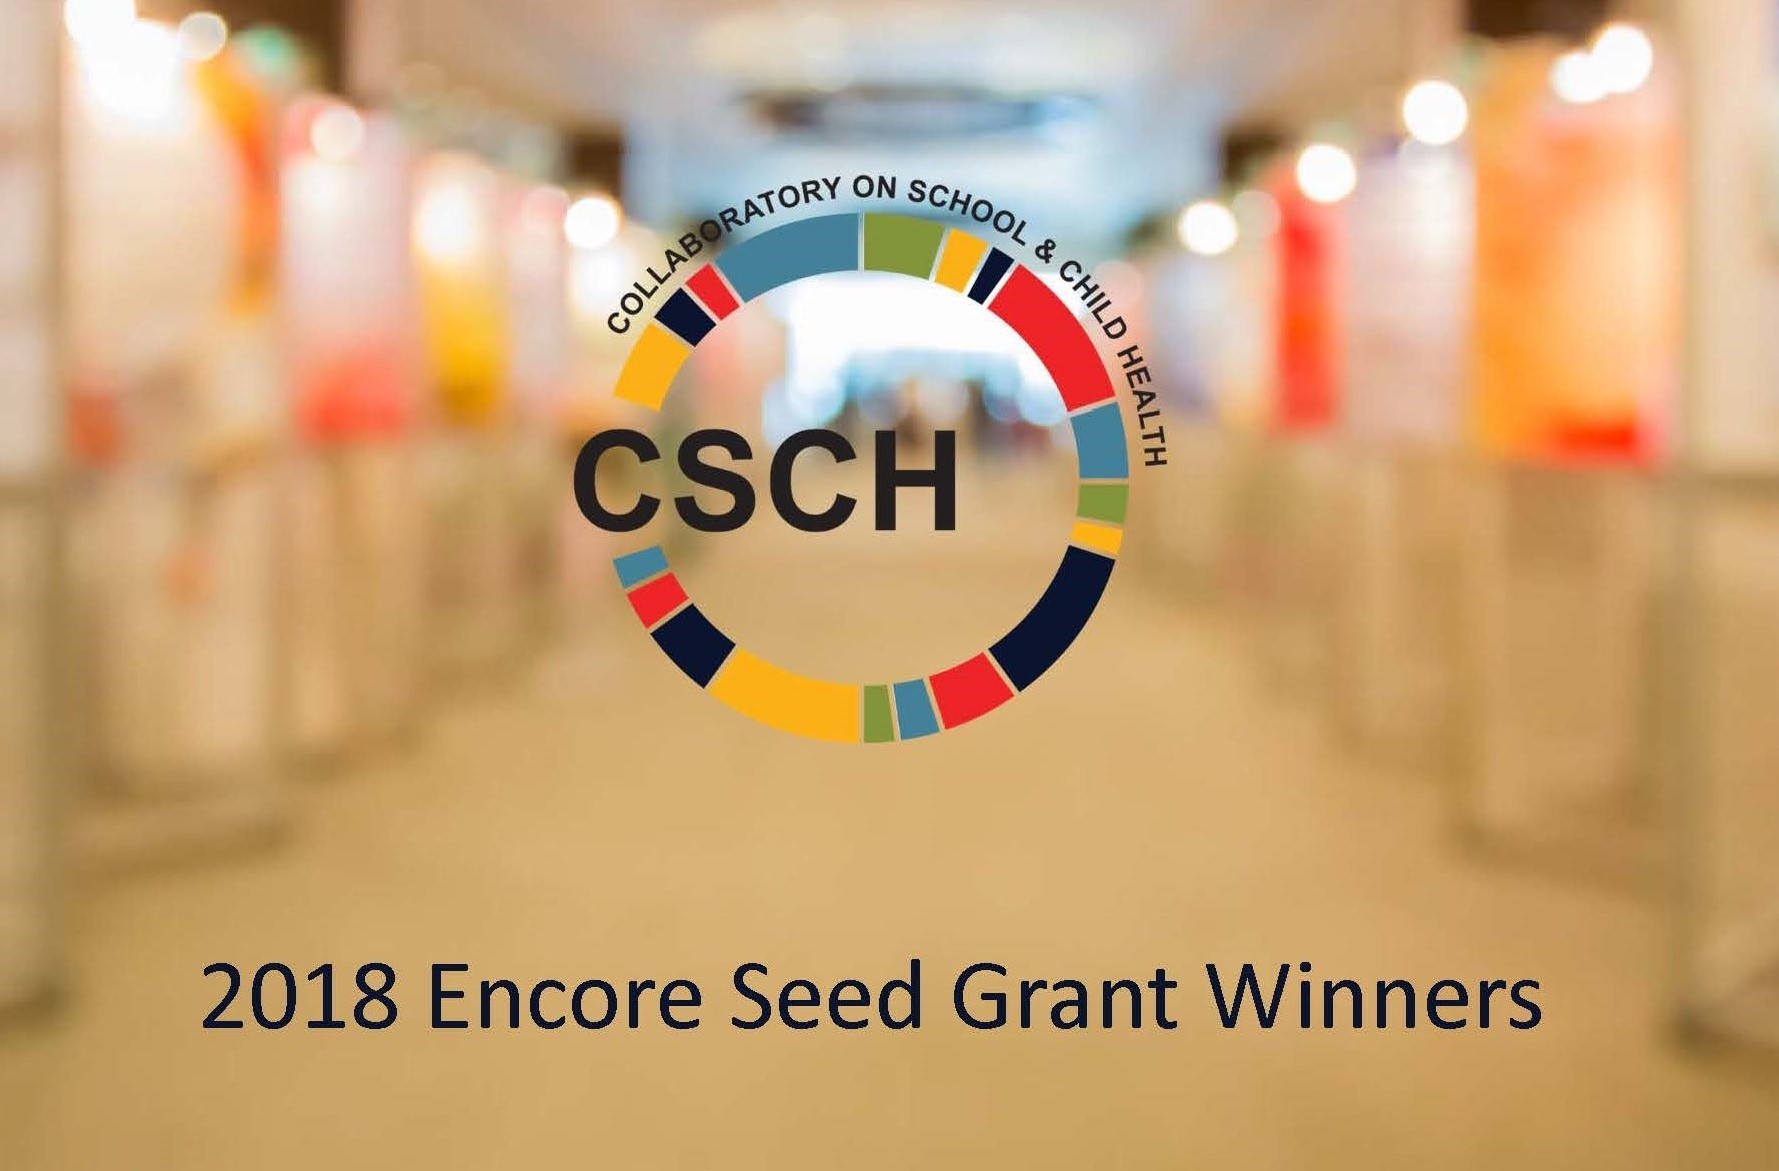 CSCH Logo and Text: 2018 Encore Seed Grant Winners